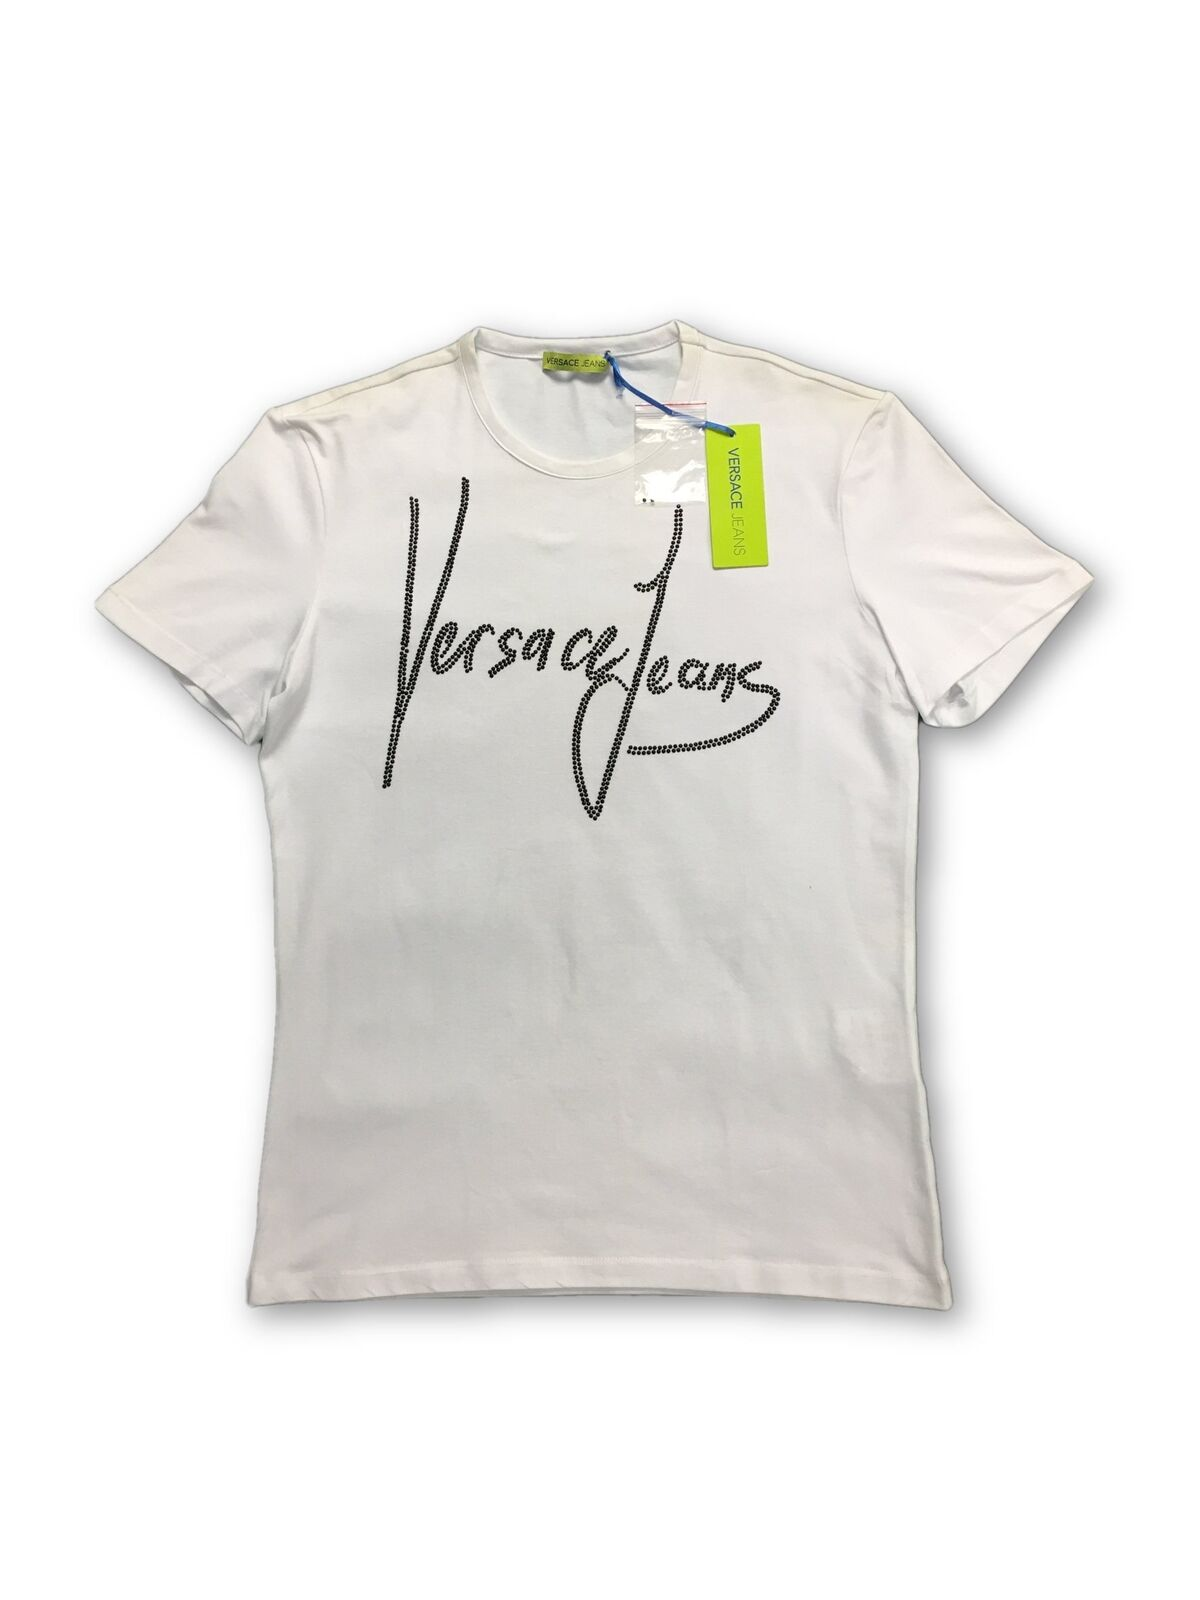 Versace Jeans T-Shirt in Weiß L rrp